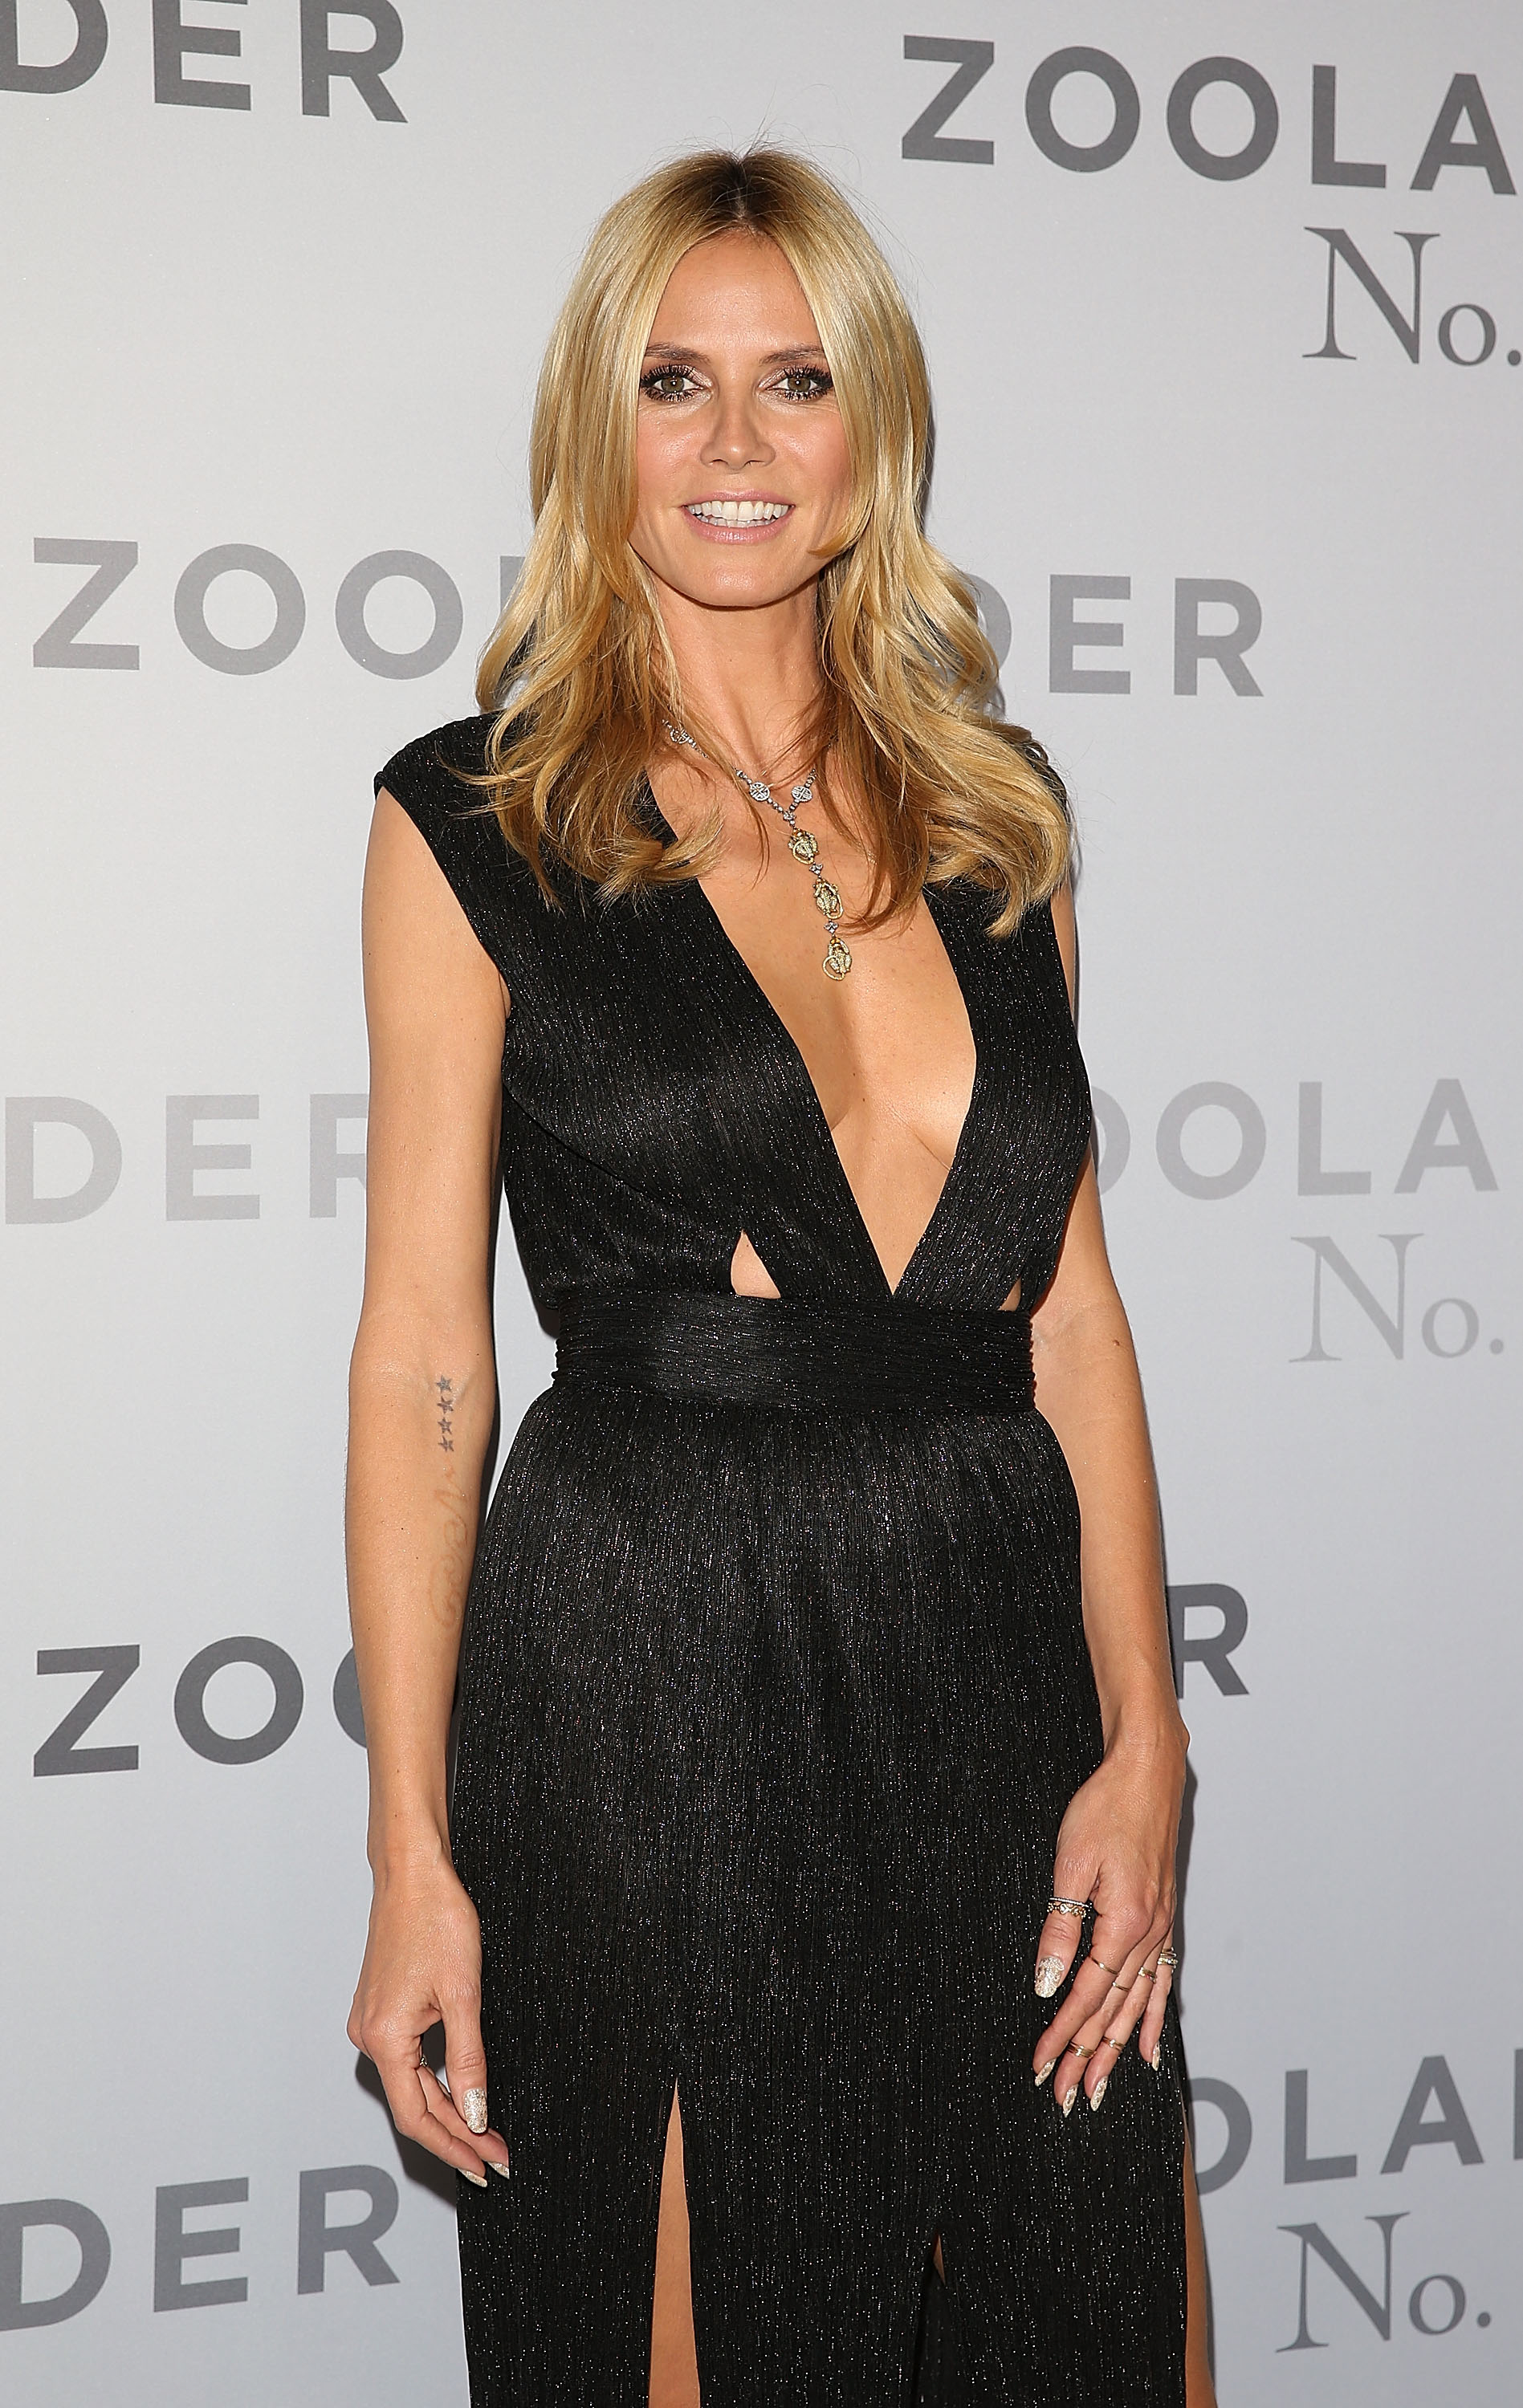 SYDNEY, AUSTRALIA - JANUARY 26: Heidi Klum attends the Sydney Fan Screening Event of the Paramount Pictures film 'Zoolander No. 2' at the State Theatre on January 26, 2016 in Sydney, Australia. (Photo by Caroline McCredie/Getty Images for Paramount Pictures) *** Local Caption *** Heidi Klum